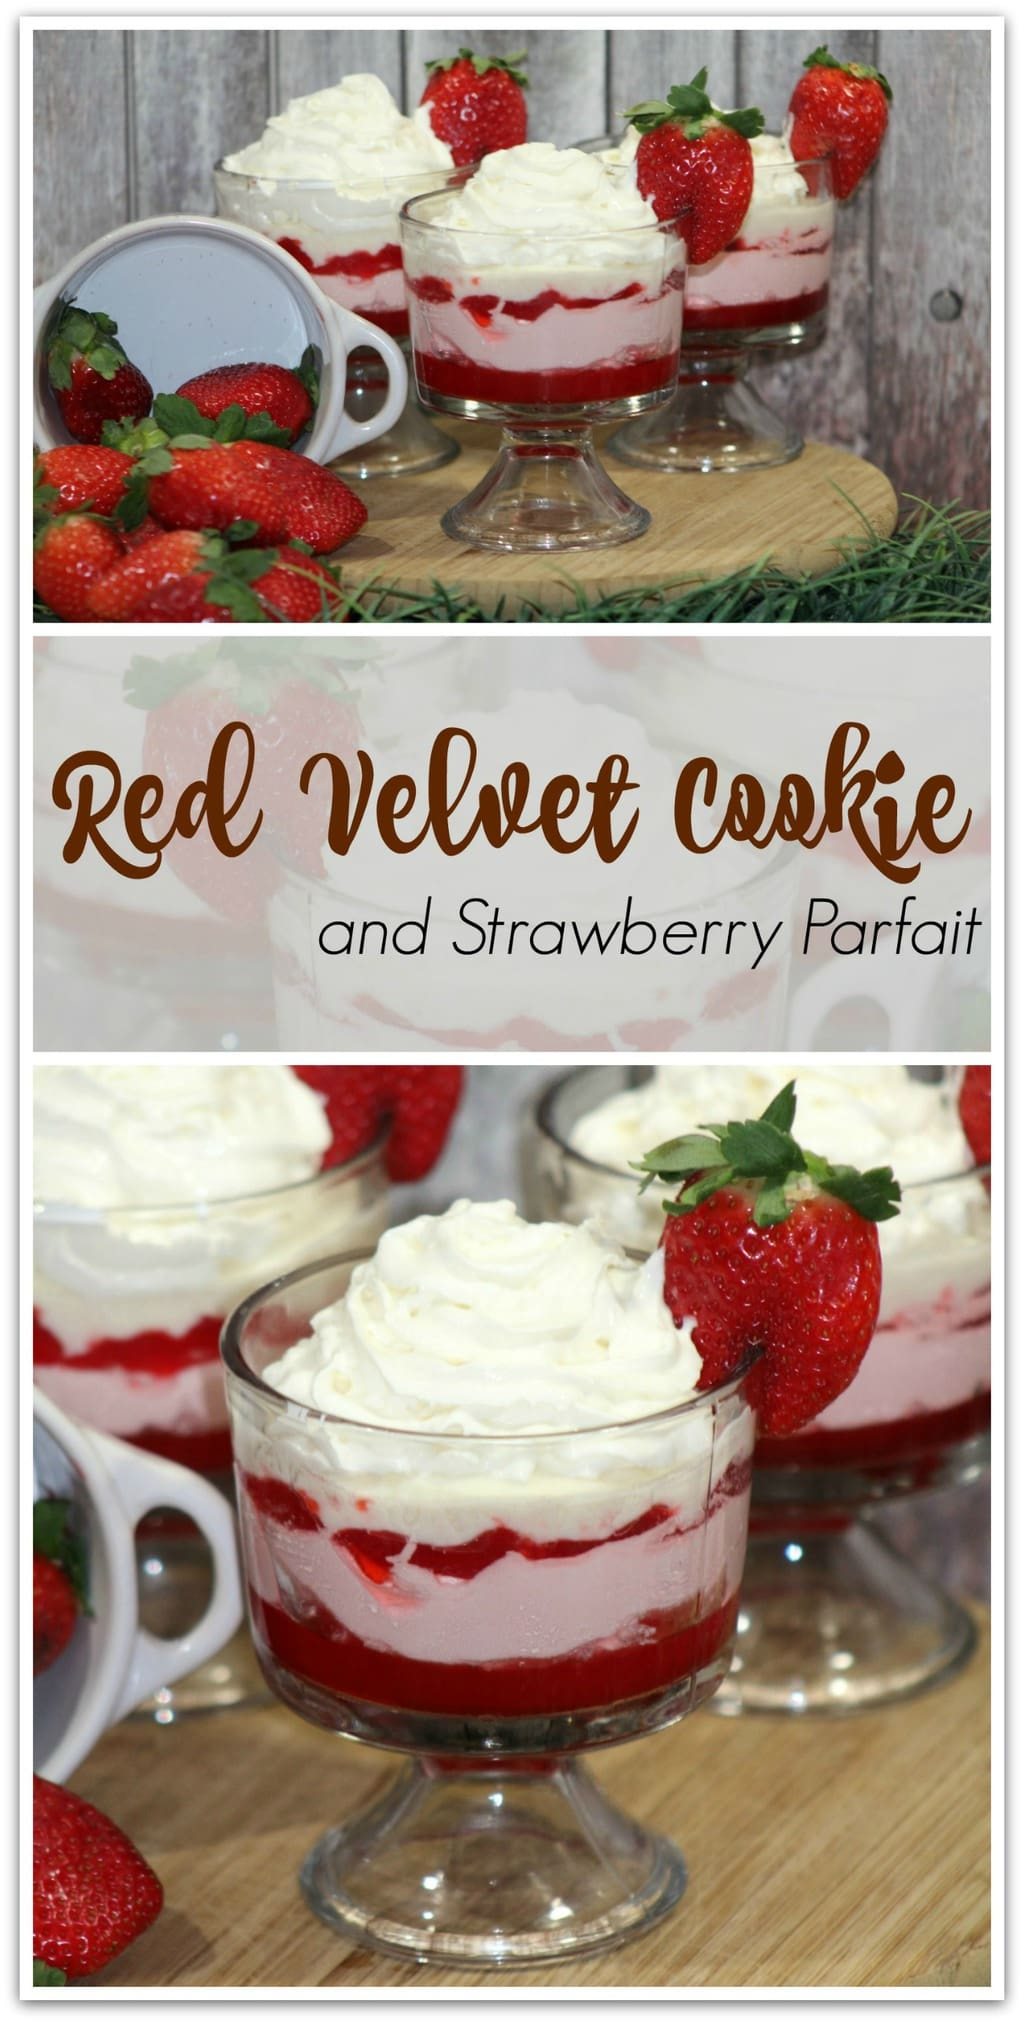 This Red Velvet Cookie and Strawberry Parfait will wow your friends and family, and it's an easy recipe! Don't go out and buy desserts when you can head to the kitchen and make this recipe yourself! This easy dessert is perfect for Valentine's Day or any day you want to make something special!